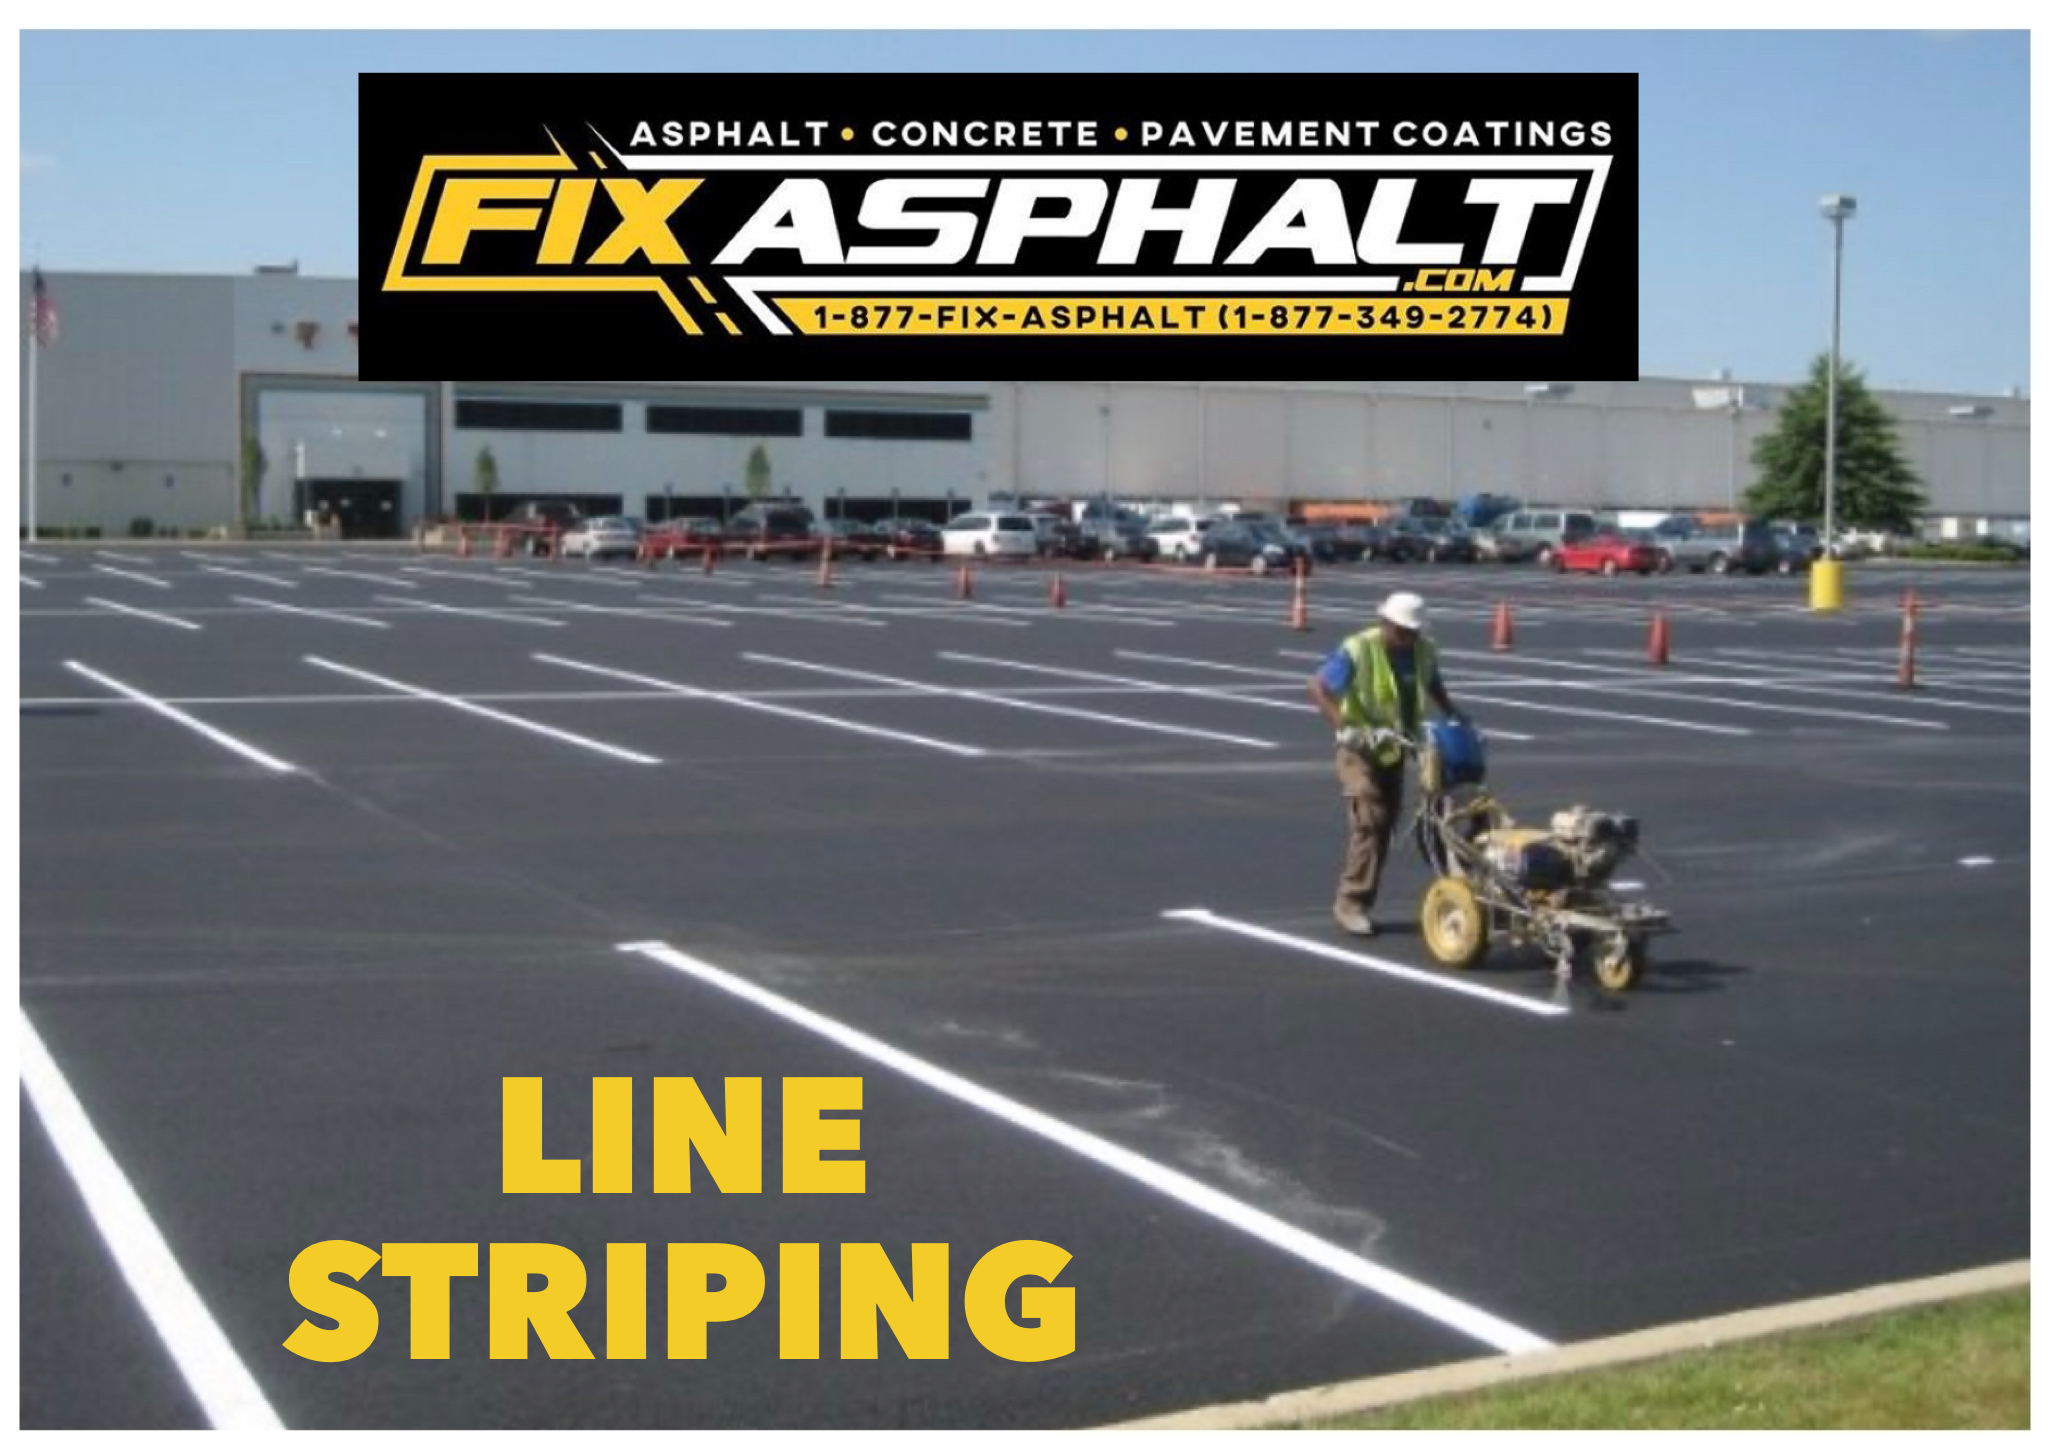 New Jersey Line Striping Contractor